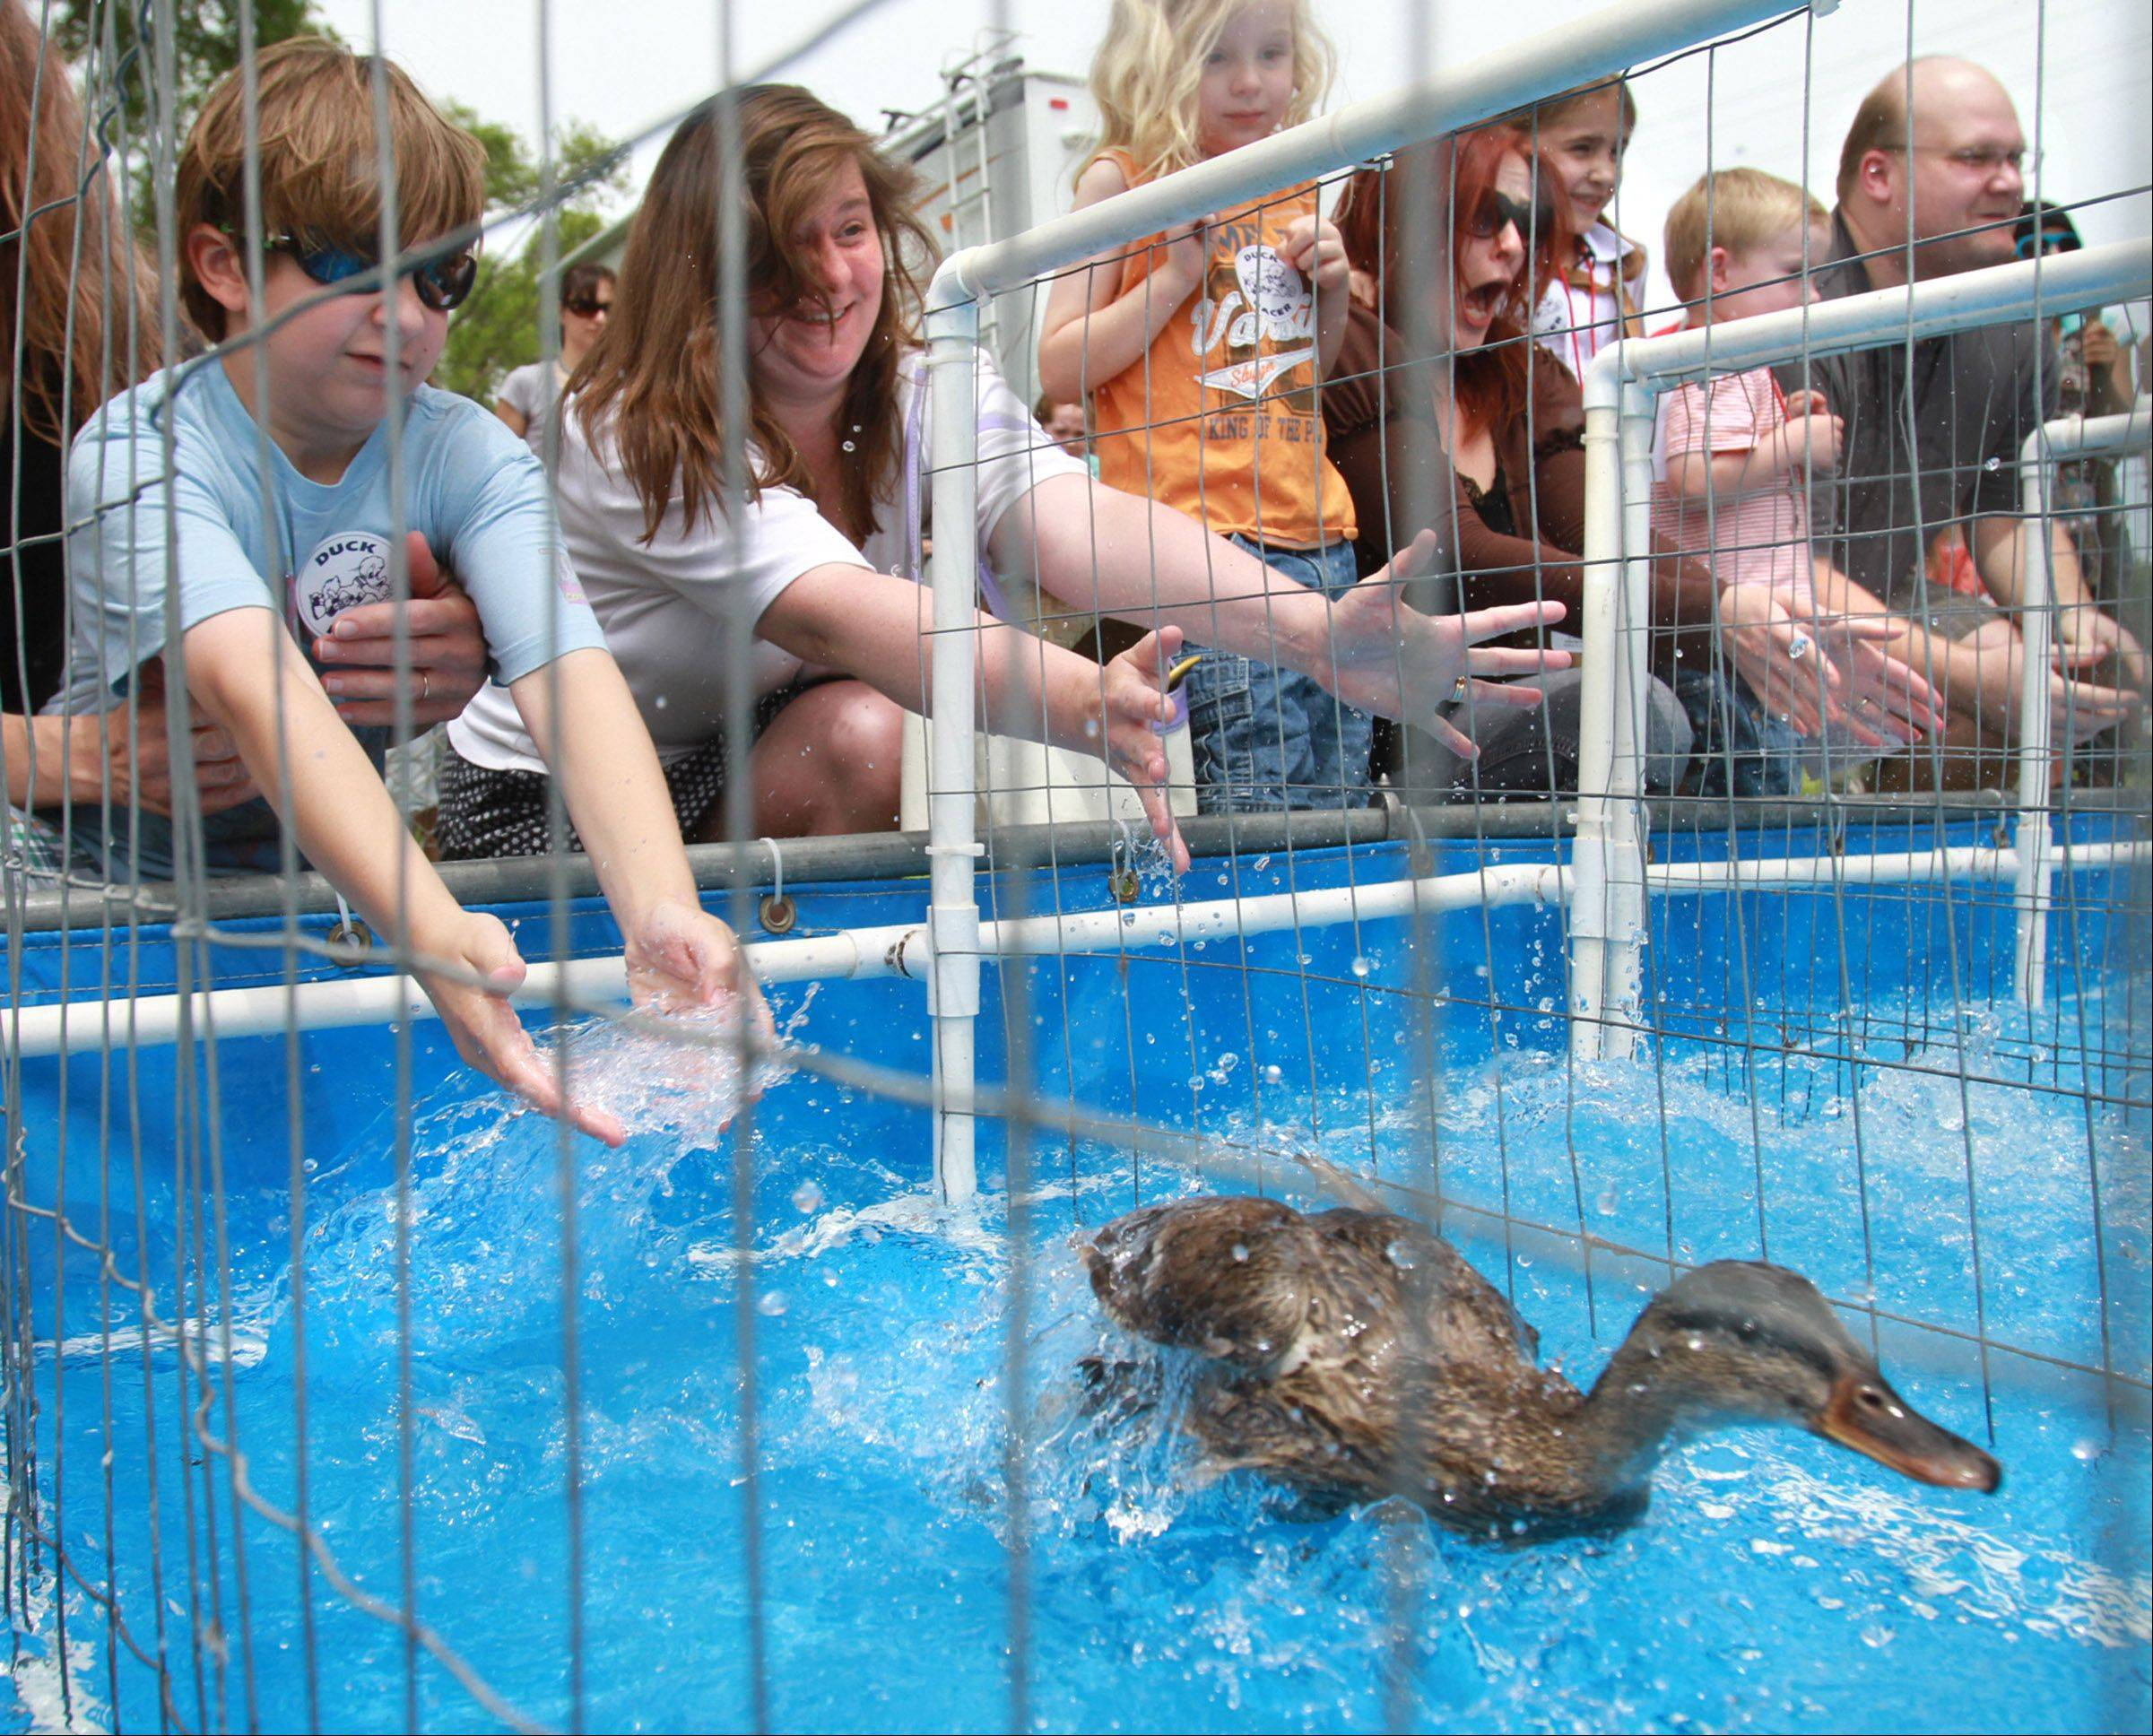 New this year at Last Fling in Naperville are the $START_URL$Great American Duck Races of New Mexico;http://www.racingducks.com/$STOP_URL$. There will be several shows each day dedicated to mallard ducks that race down a water pond.